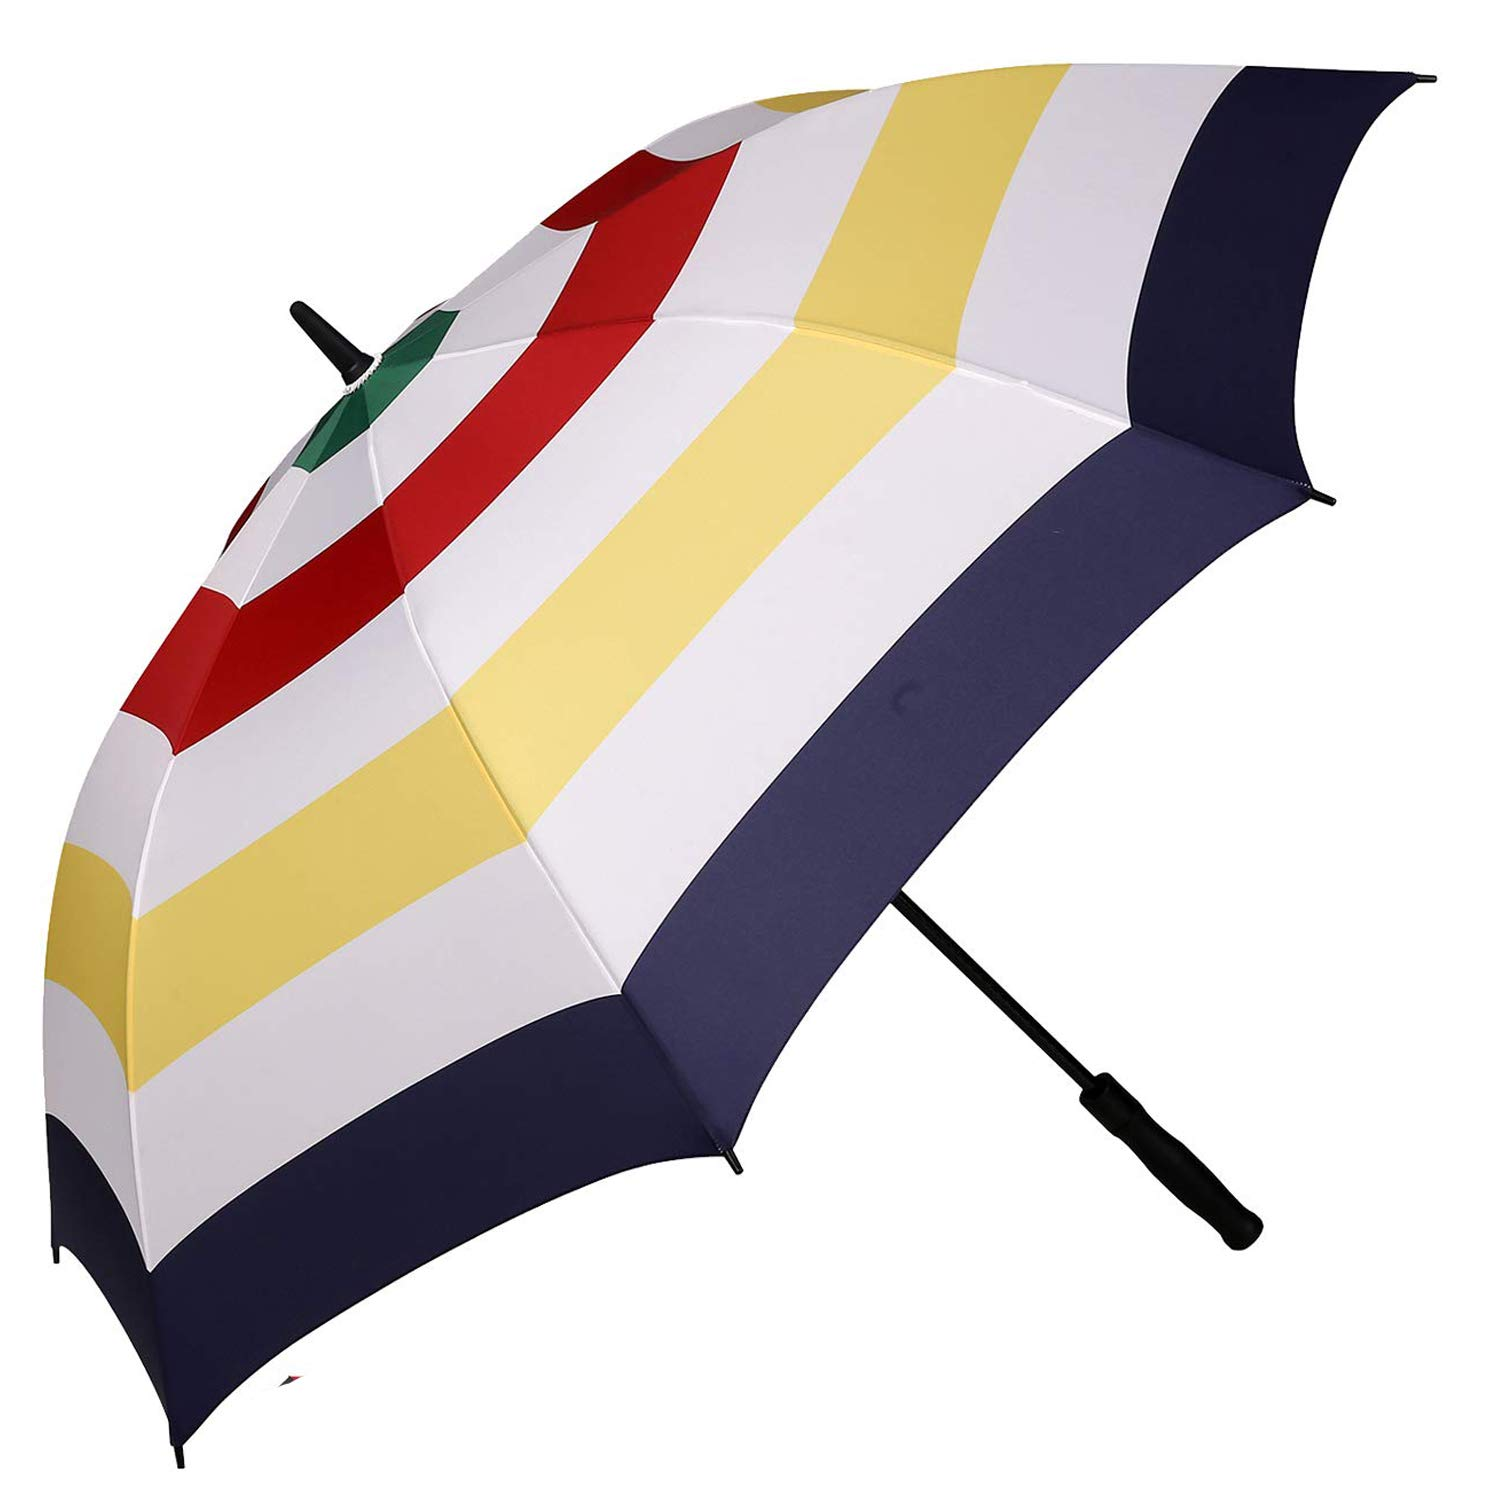 BAGAIL Golf Umbrella 68/62/58 Inch Large Oversize Windproof Waterproof Automatic Open Stick Umbrellas for Men and Women (Color Stripe, 68 inch) by BAGAIL